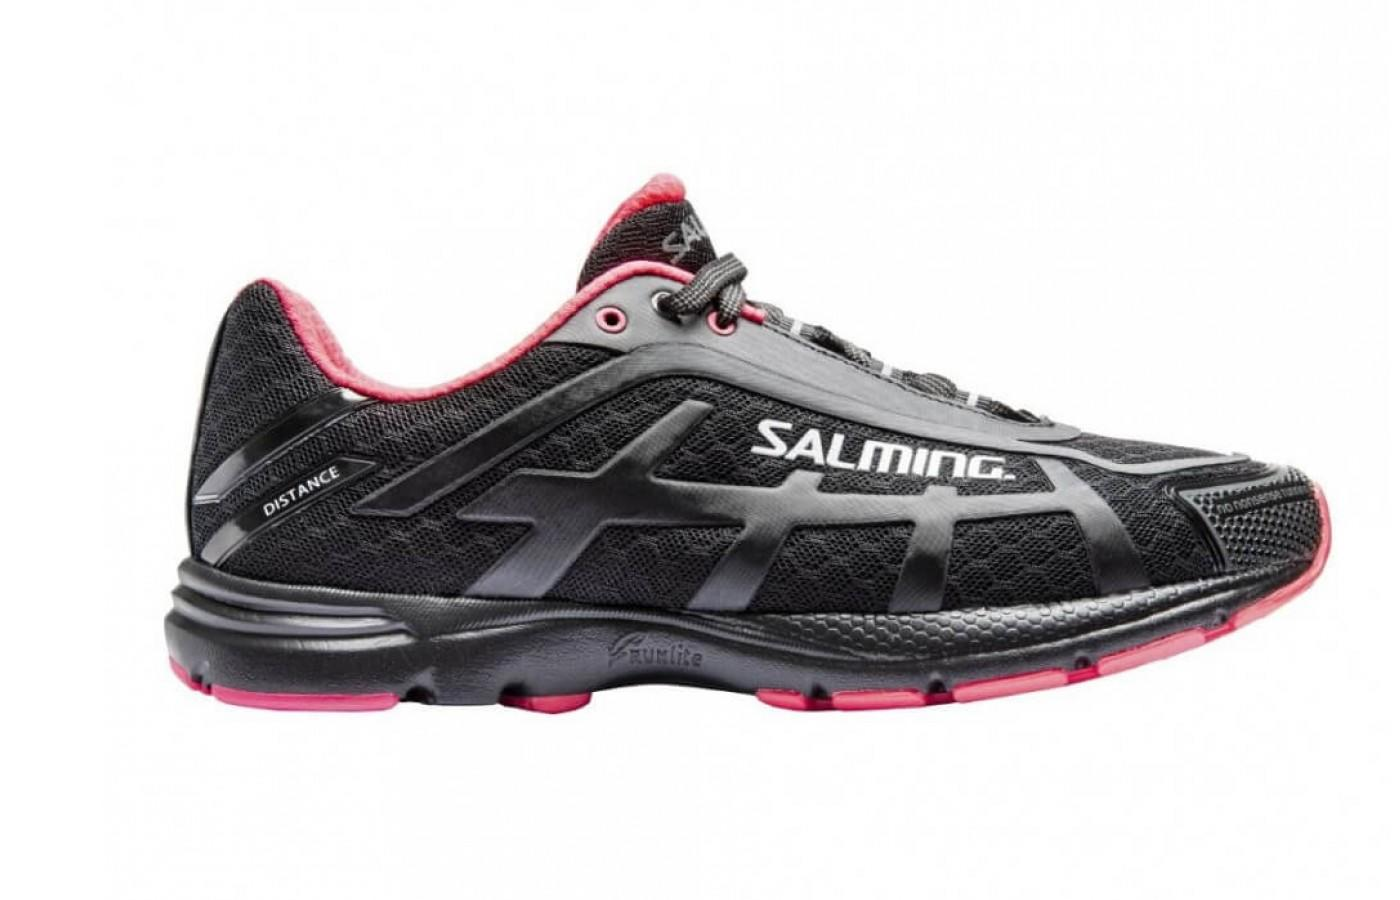 Salming Distance D4 is a good racing or daily running shoe